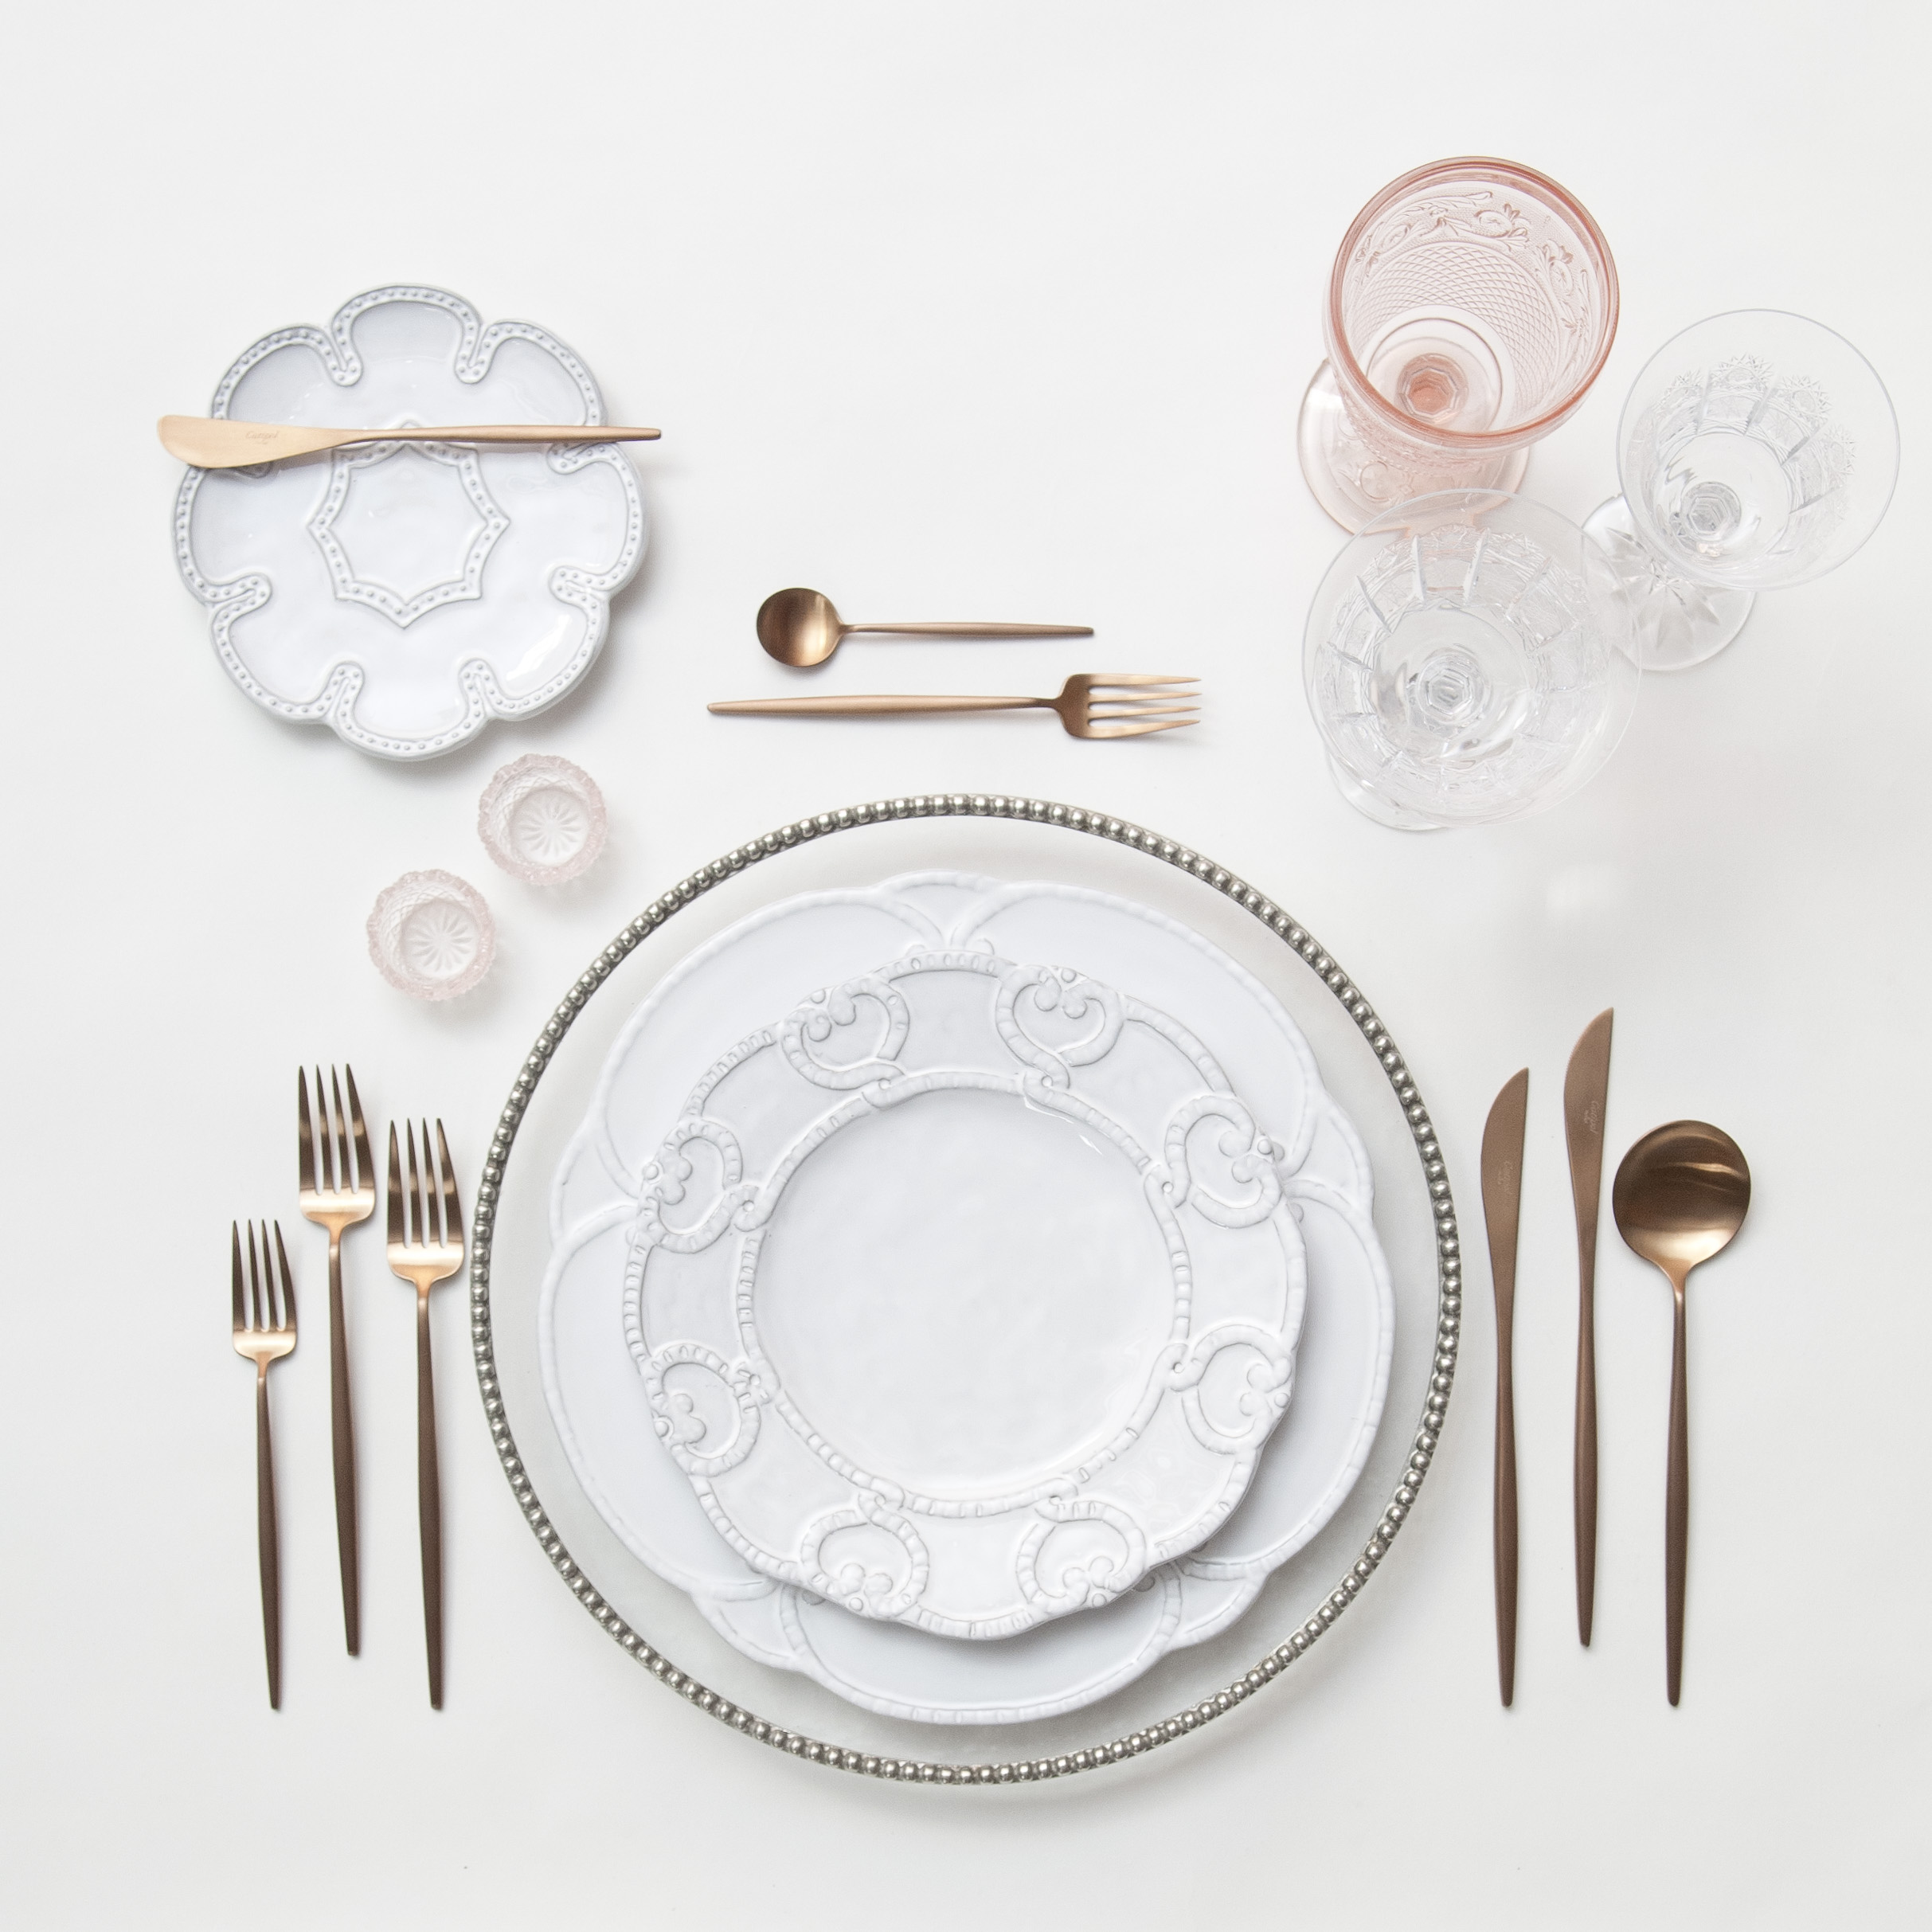 RENT: Pav é Glass Chargers in Pewter + Signature Collection Dinnerware + Moon Flatware in Brushed Rose Gold + Vintage Pink Goblets + Czech Crystal Stemware + Pink Crystal Salt Cellars    SHOP:  Moon Flatware in Brushed Rose Gold